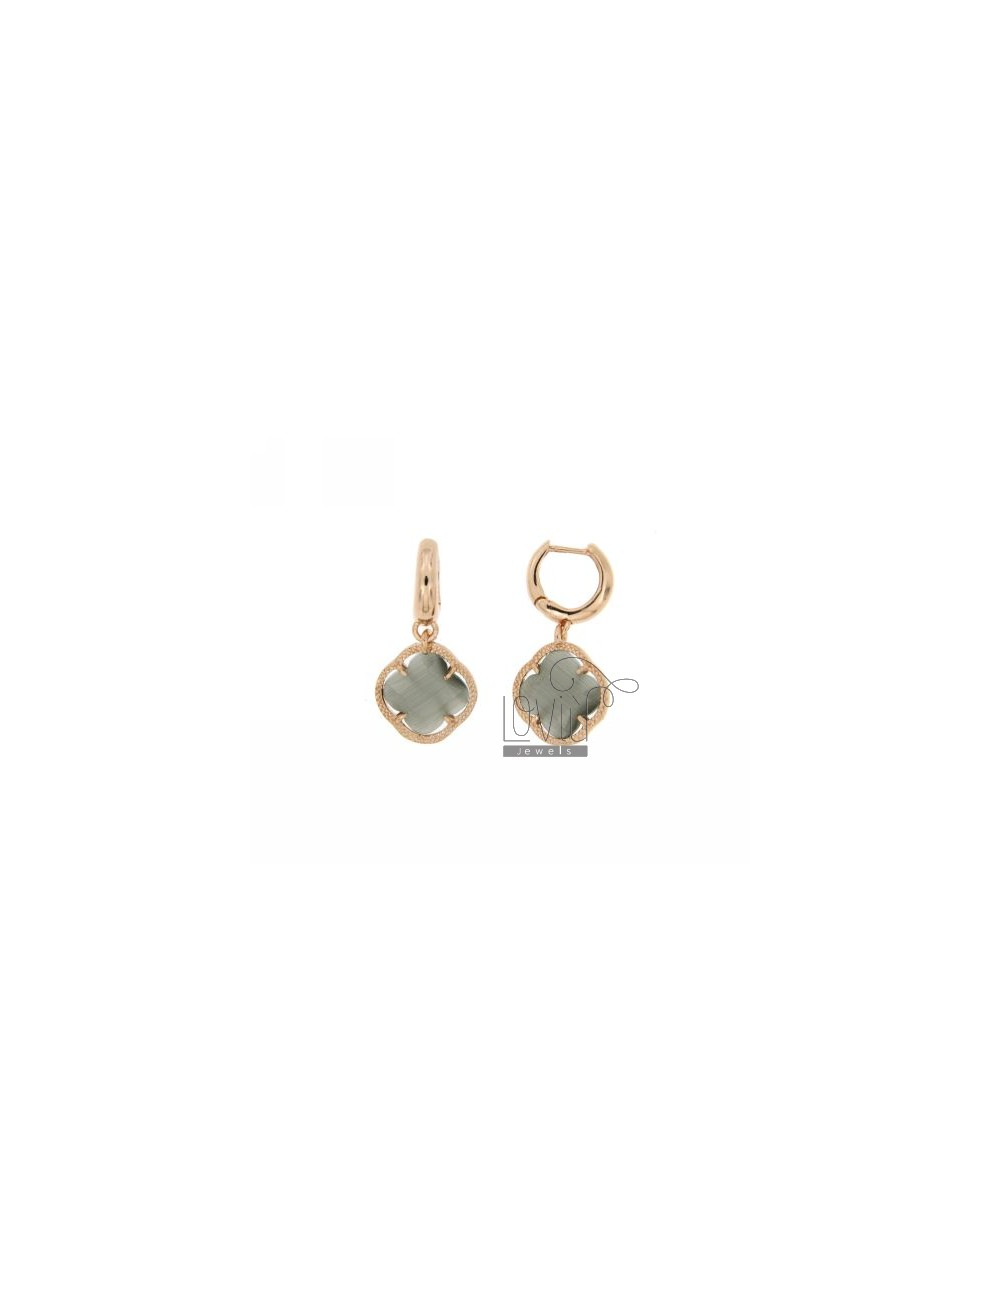 BEAD EARRINGS SILVER PLATED ROSE GOLD 925 ‰ TITLE AND FLOWER PENDANT SMALL STONE COLOR PEARL GREY 51 HYDROTHERMAL